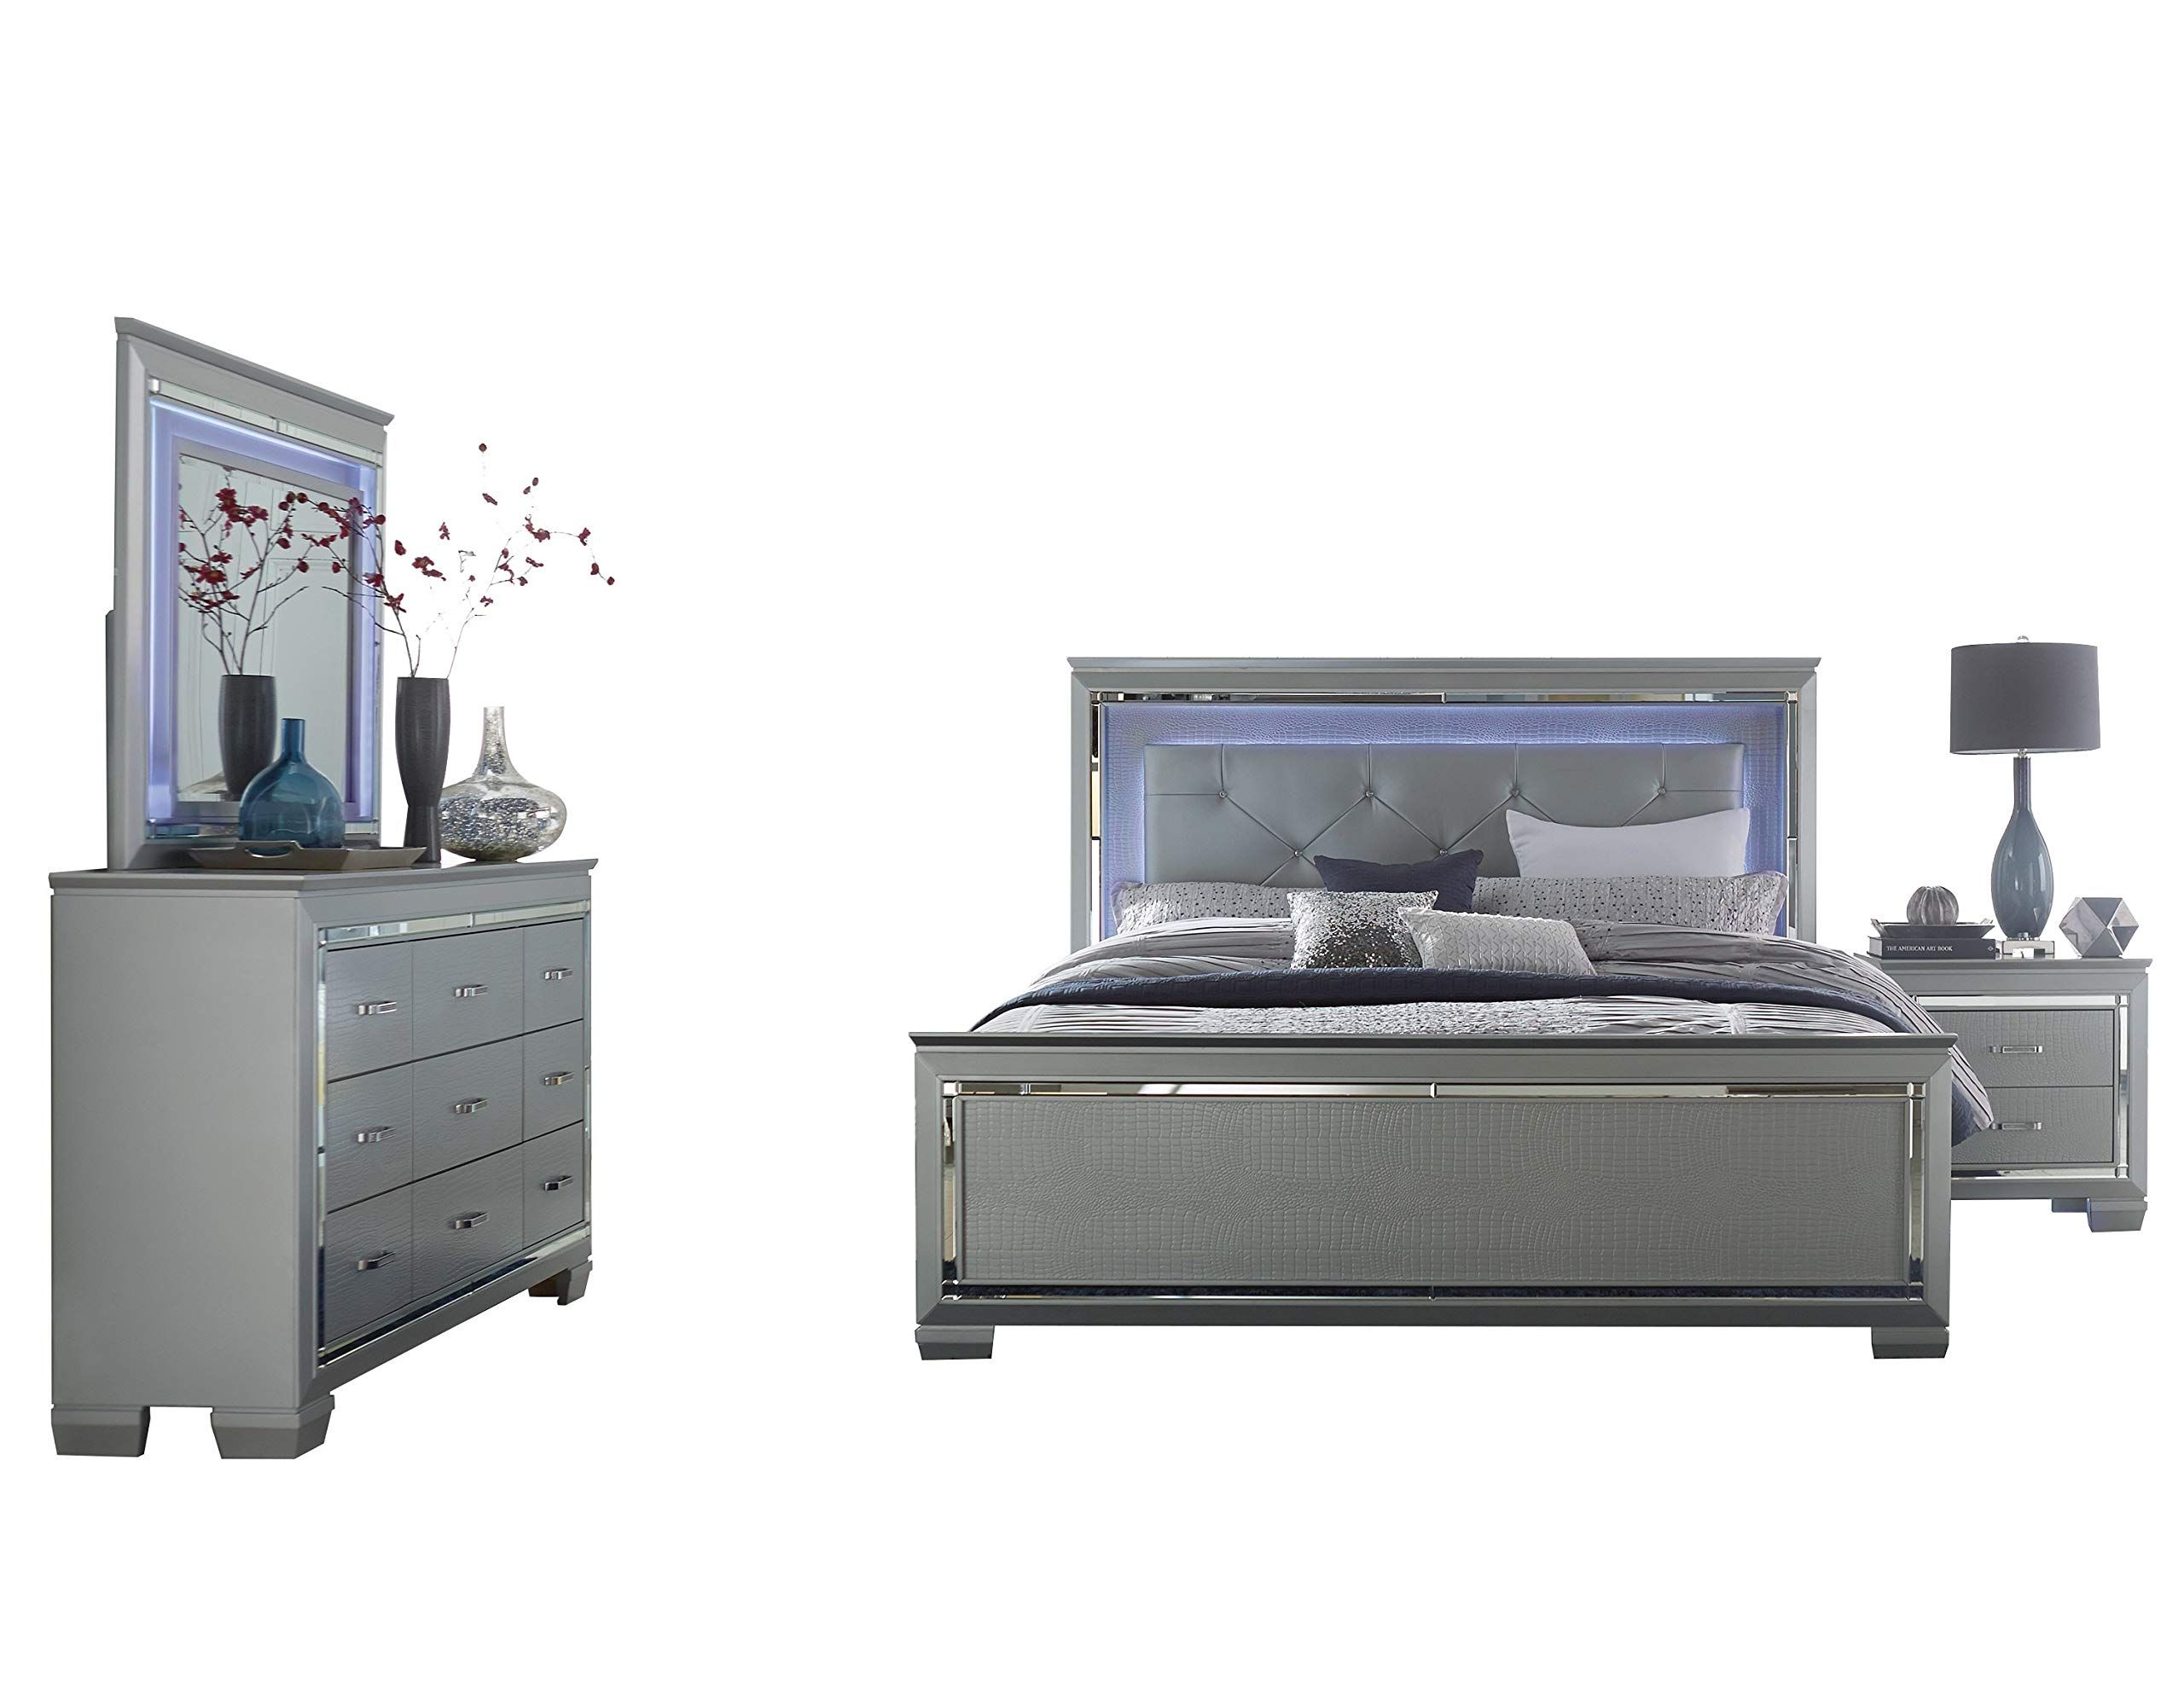 Algiers 4pc Bedroom Set E King Led Bed Dresser Mirror Nightstand In Silver Alligator Embossed Make Certain To King Bedroom Sets Led Beds Bedroom Sets Queen